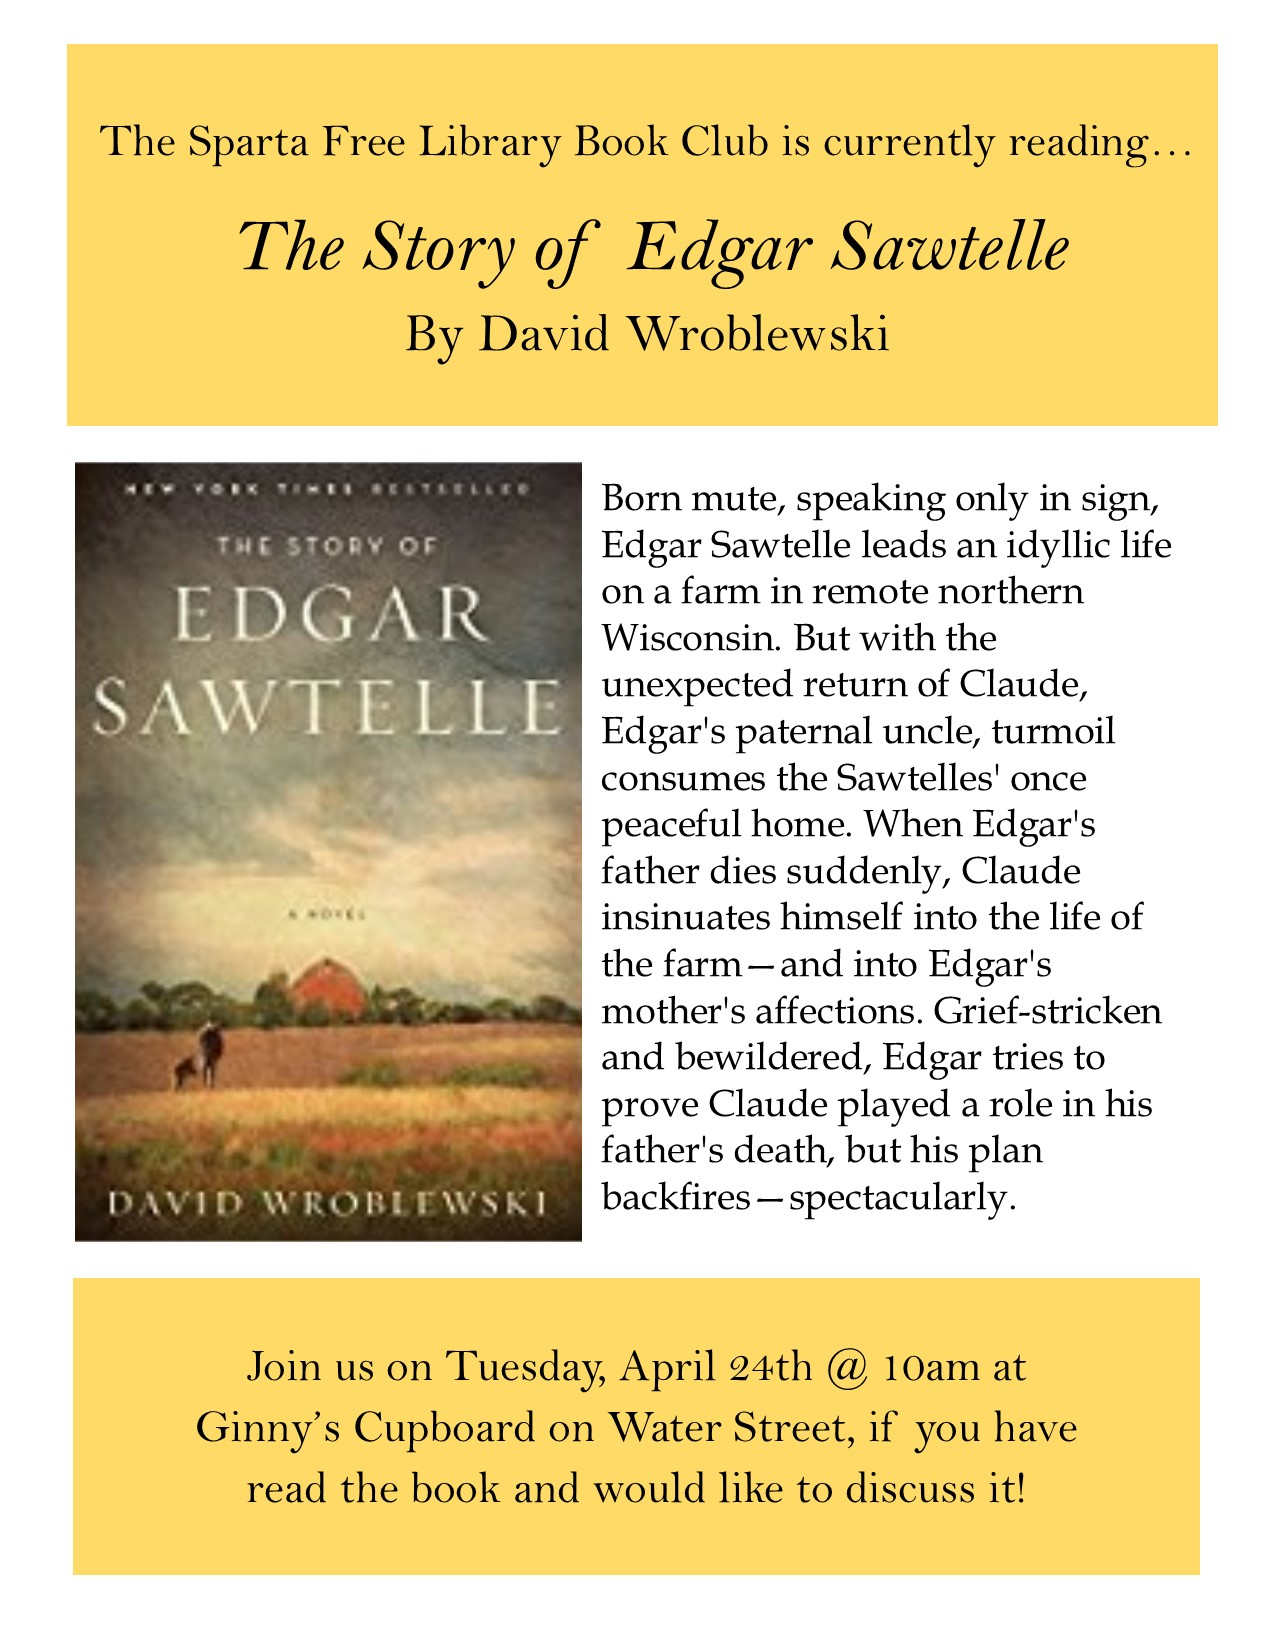 Adult Book Club: The Story of Edgar Sawtelle